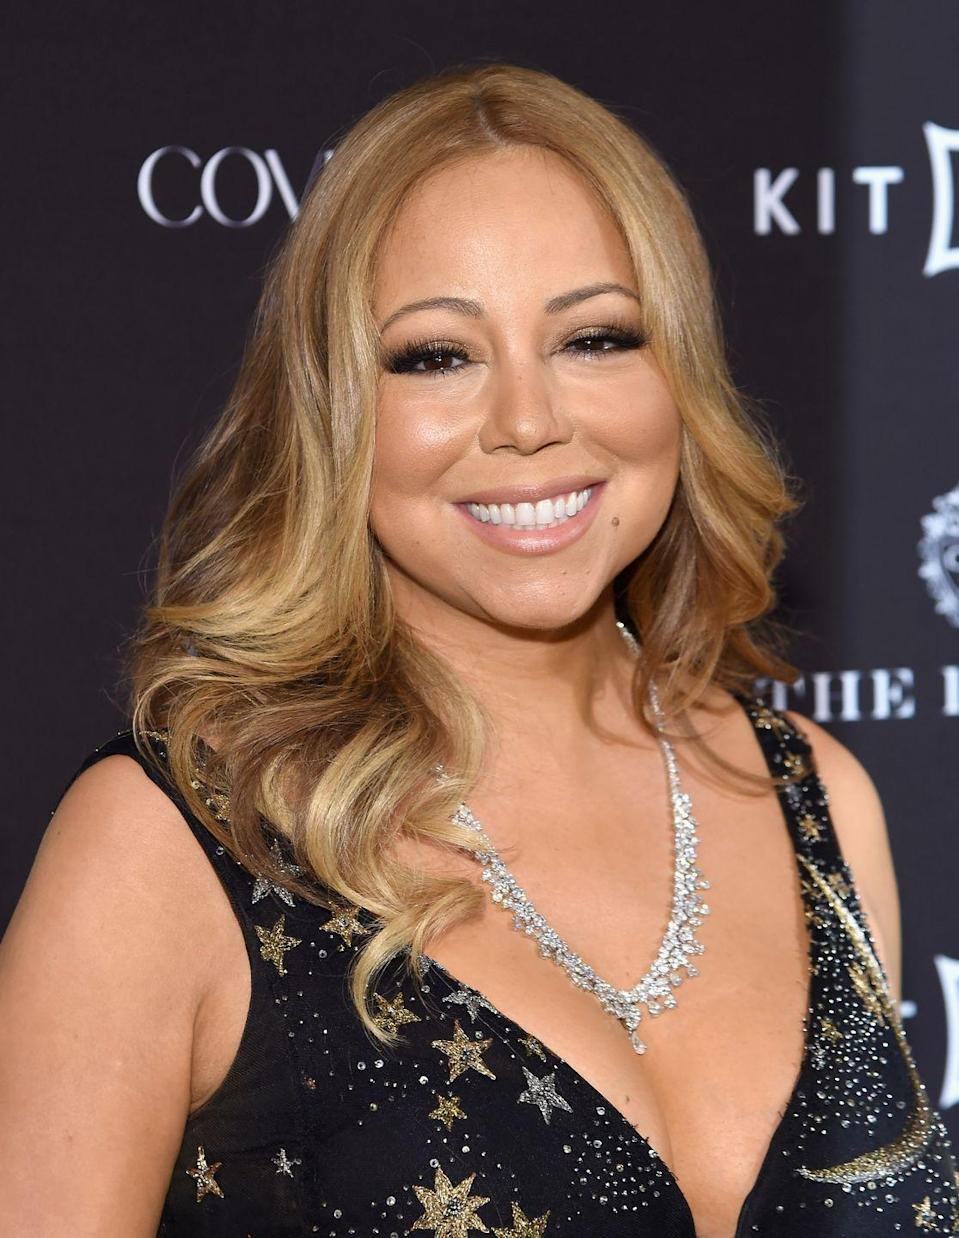 "<p>Carey plays herself in the 2001 film <em>Glitter </em>and was definitely not a fan. She told Andy Cohen it was her <a href=""http://hiphollywood.com/2013/12/mariah-carey-talks-glitter-biggest-regret-ever/"" rel=""nofollow noopener"" target=""_blank"" data-ylk=""slk:biggest regret"" class=""link rapid-noclick-resp"">biggest regret</a>. ""It was a horrible couple of years and then I had to get my momentum back for people to let it go.""</p>"